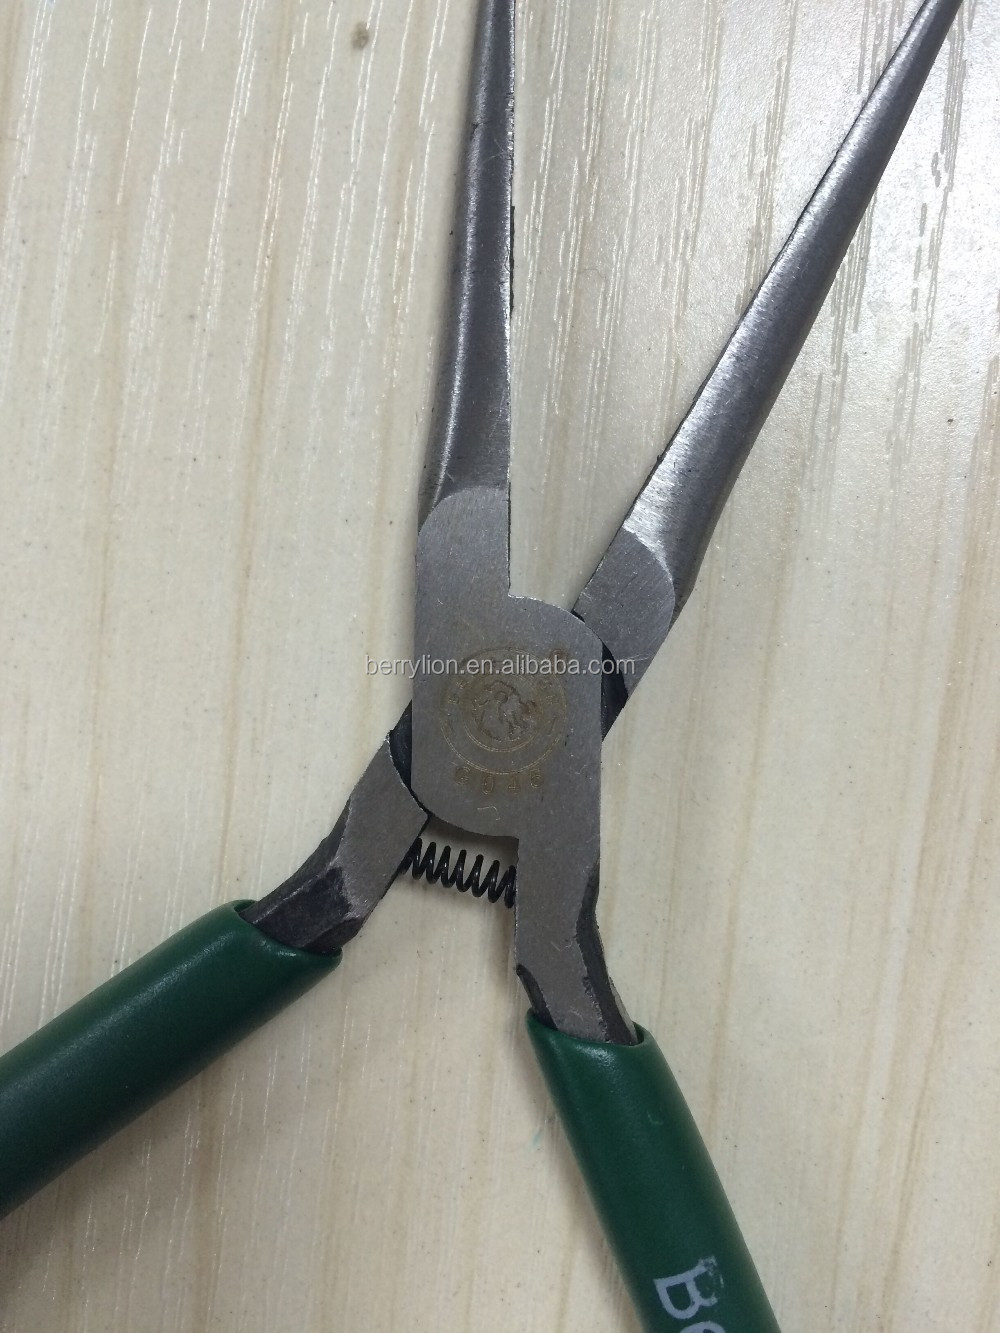 5 inches spring design long blade cutting plier